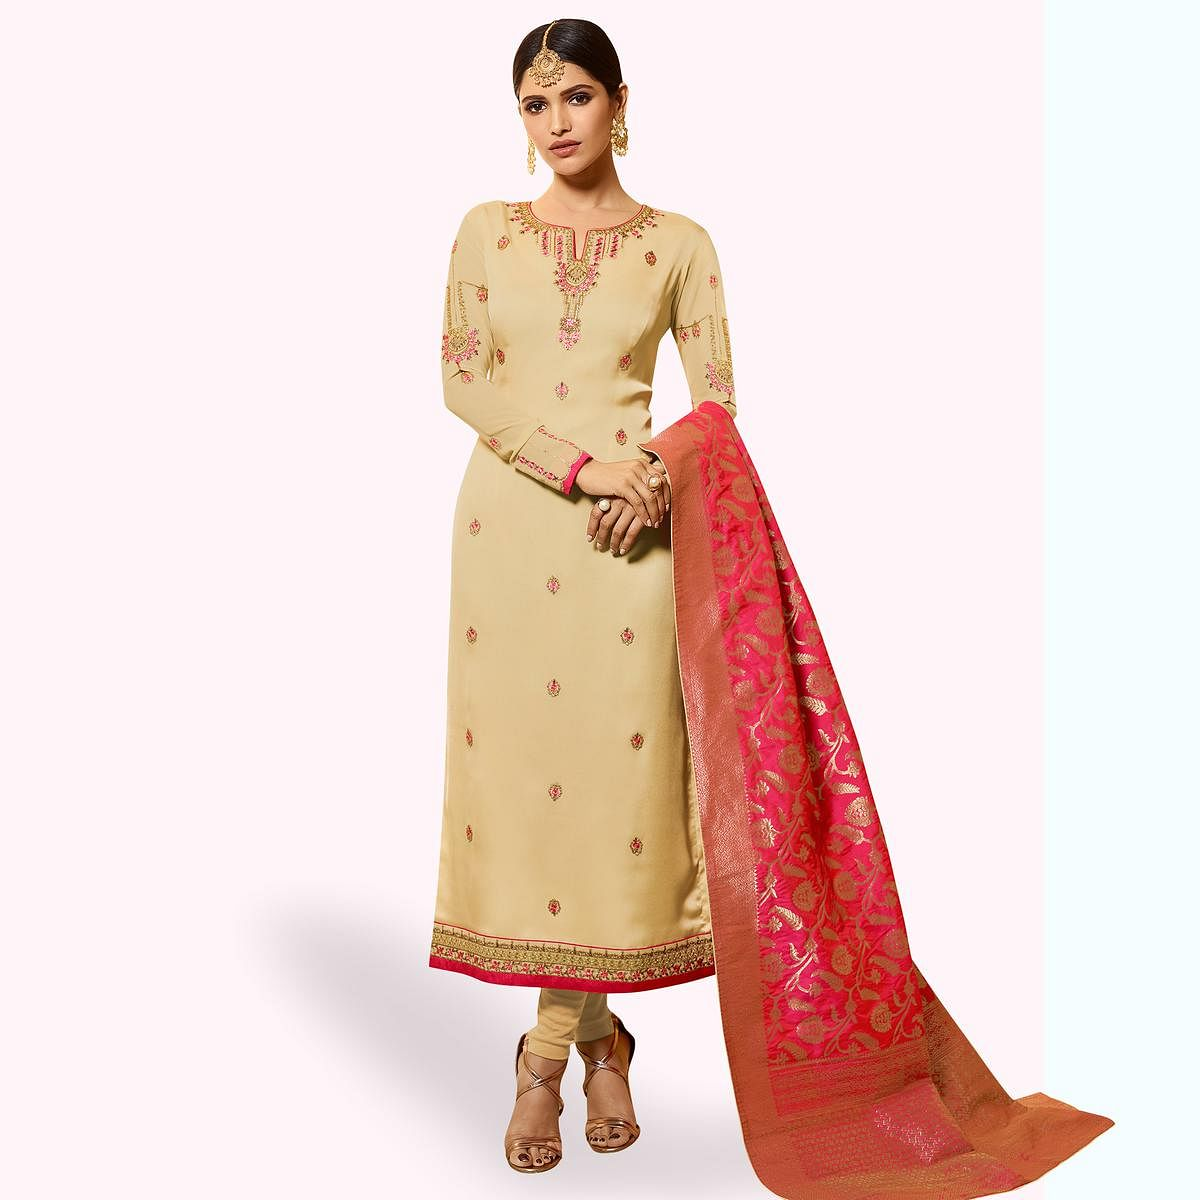 Eye-catching Beige Colored Partywear Embroidered Georgette Salwar Suit With Banarasi Dupatta